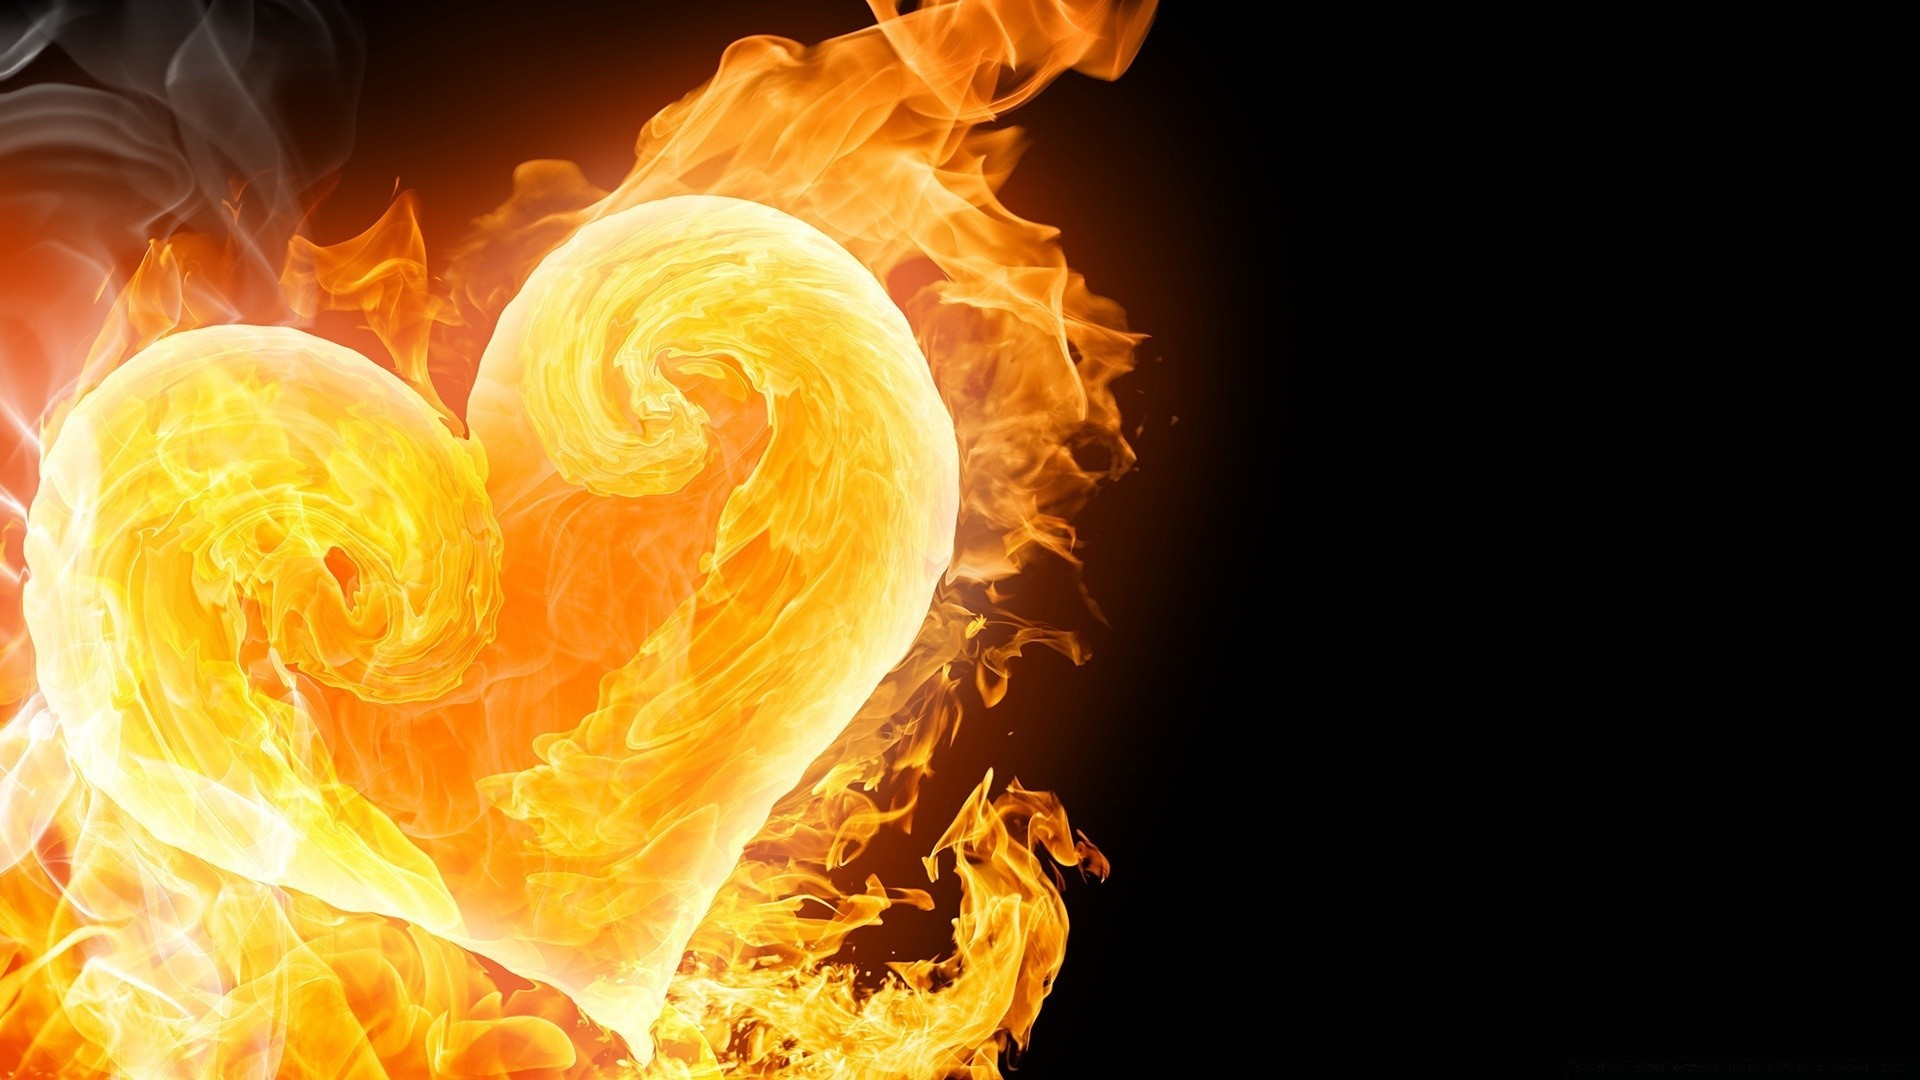 love fuel's the heart. android wallpapers for free.